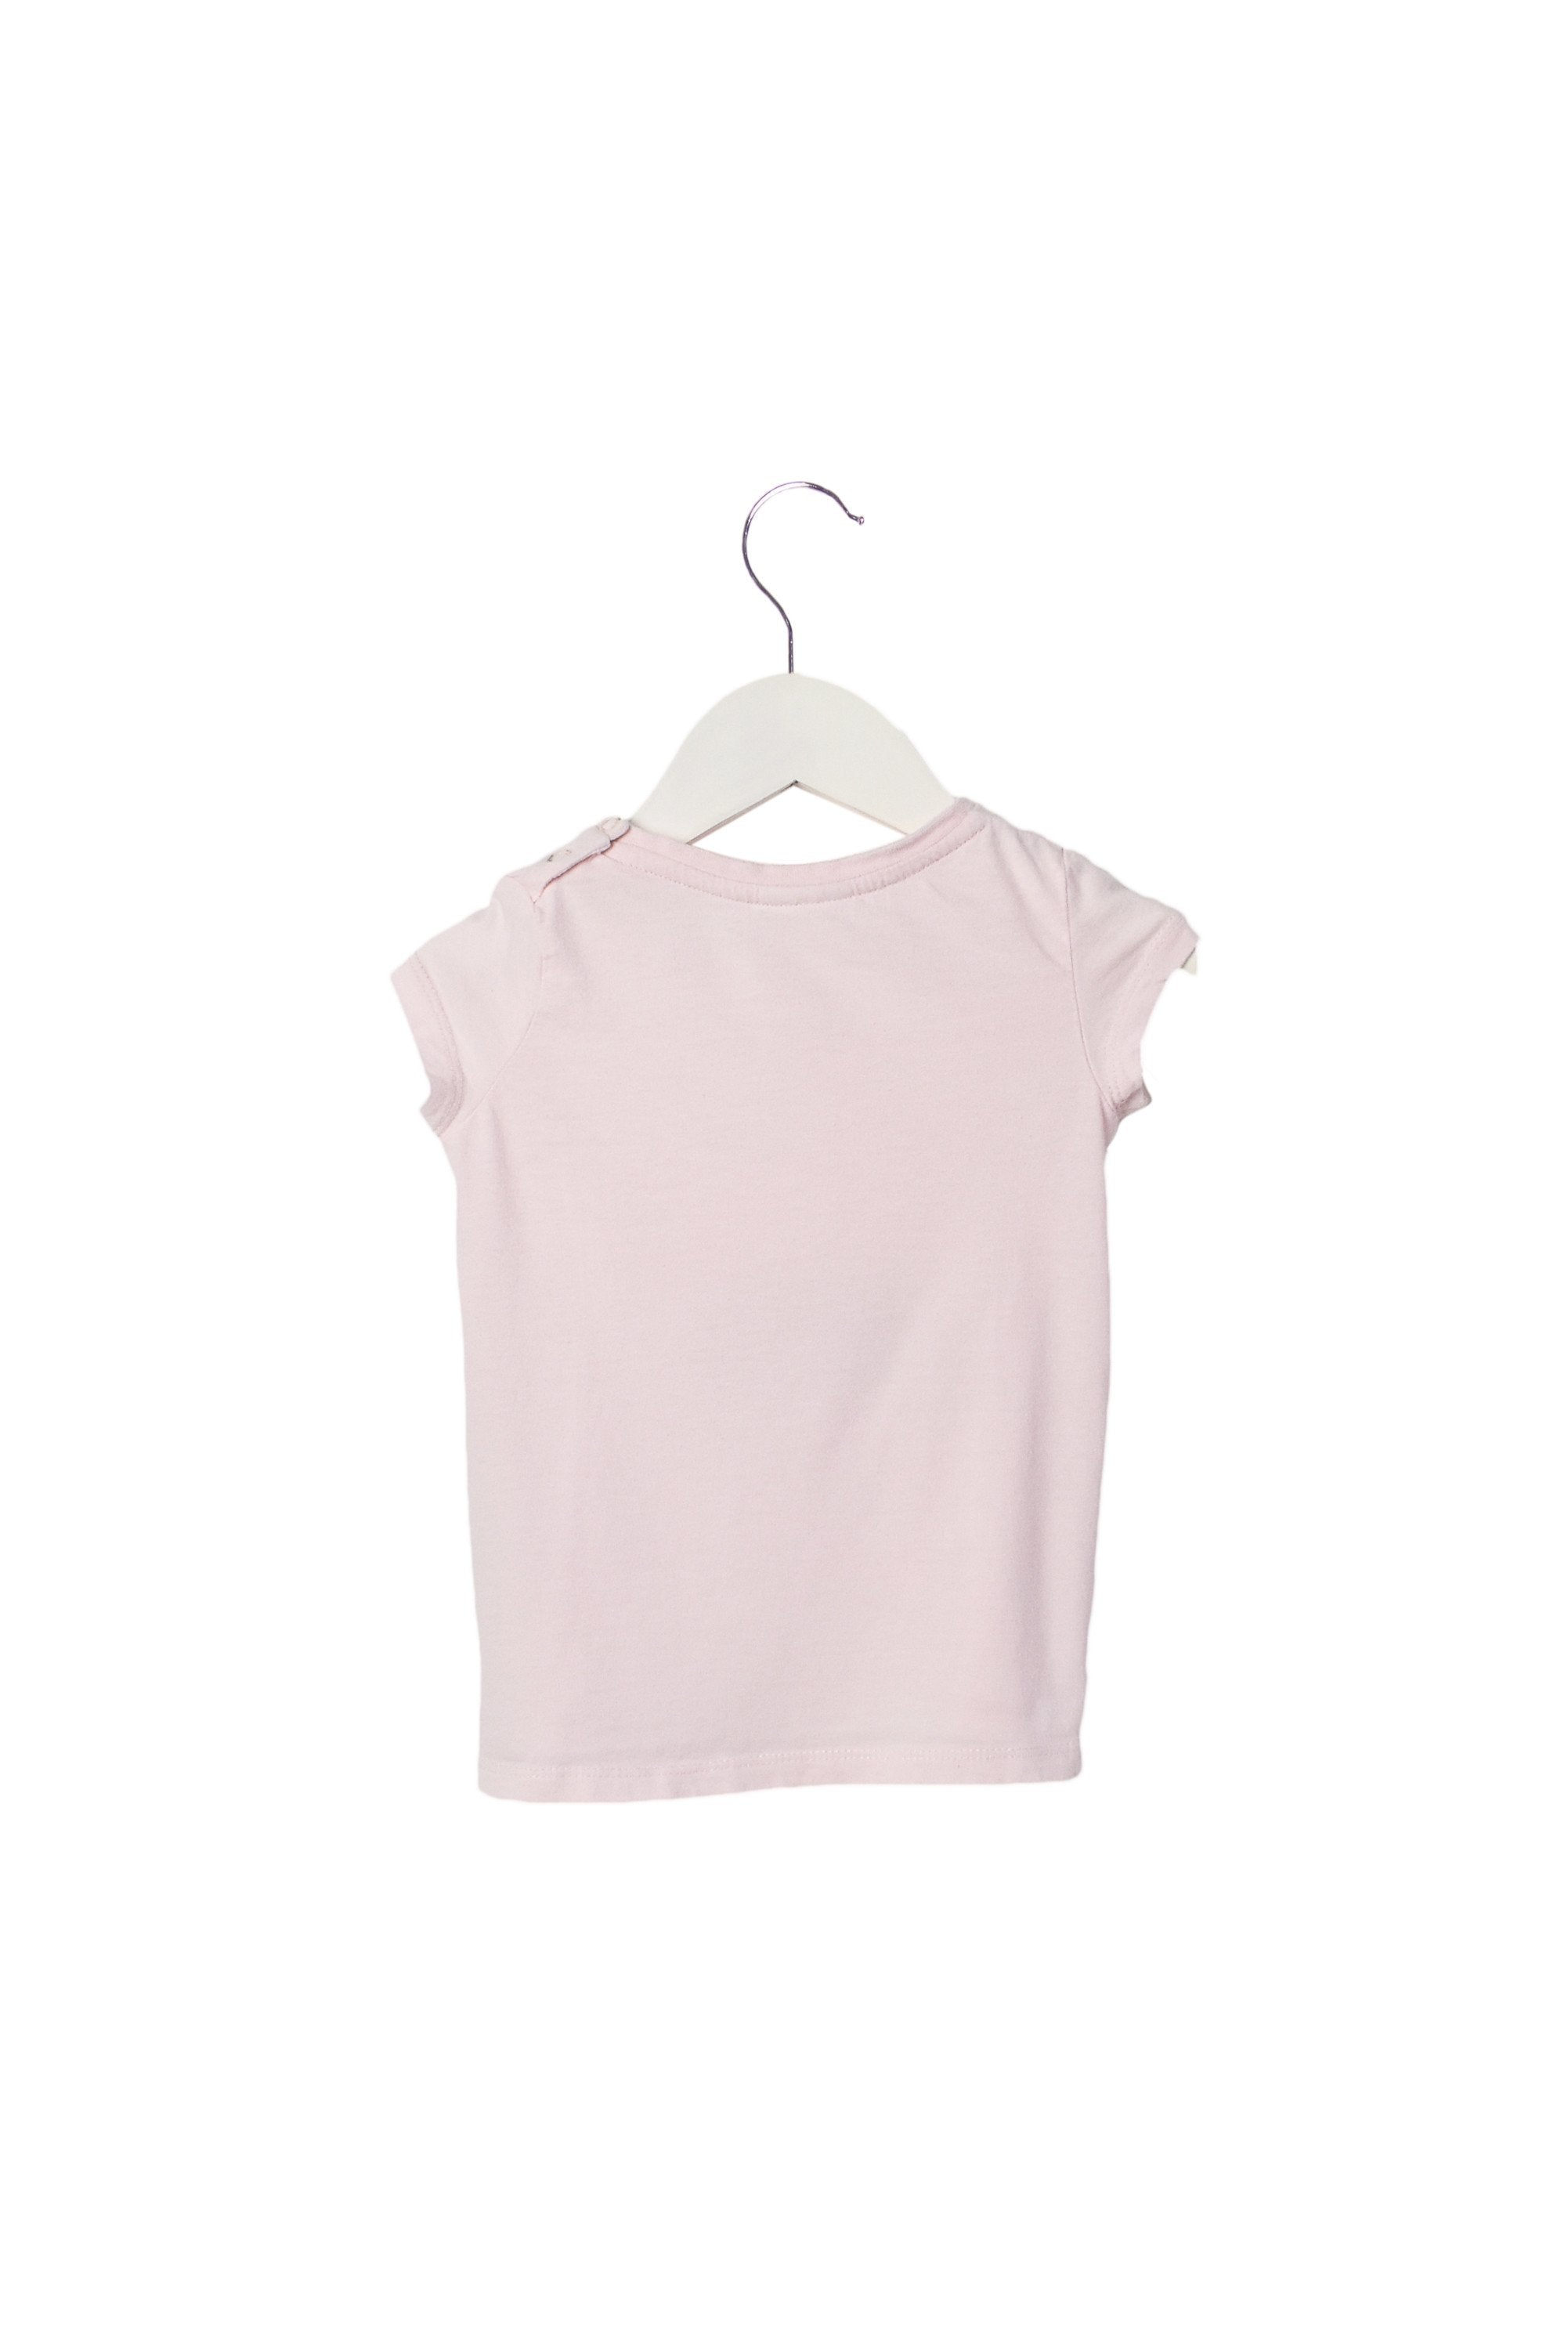 10006398 Seed Kids~T-Shirt 3-4T at Retykle